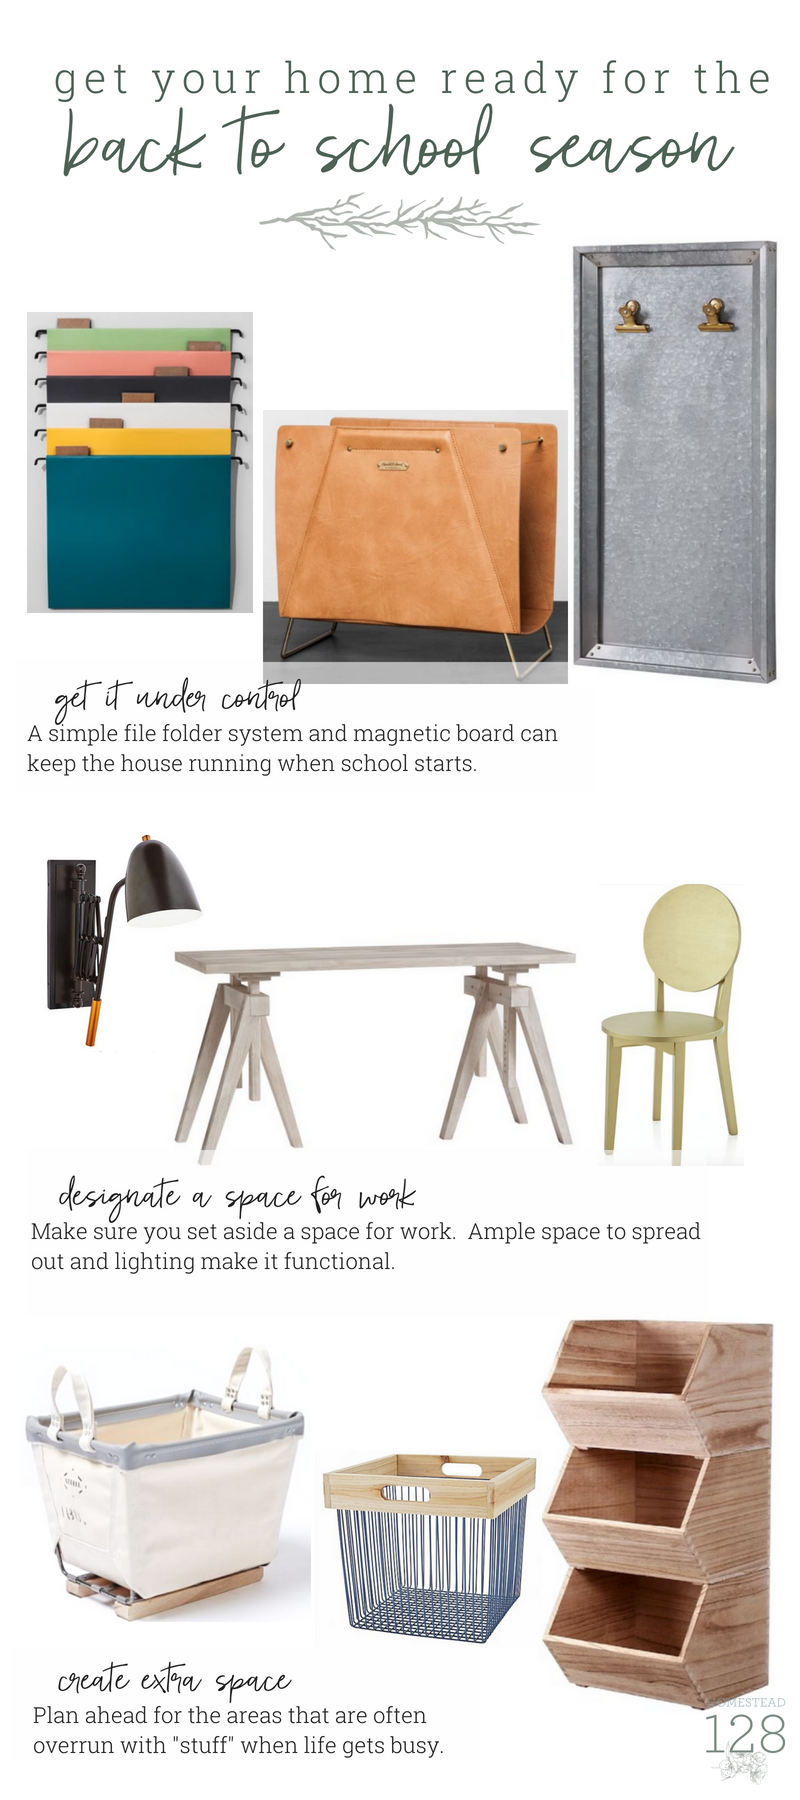 Be ready for back to school season! Plan ahead to create a home that keeps all of the papers, activities, and homework under control.